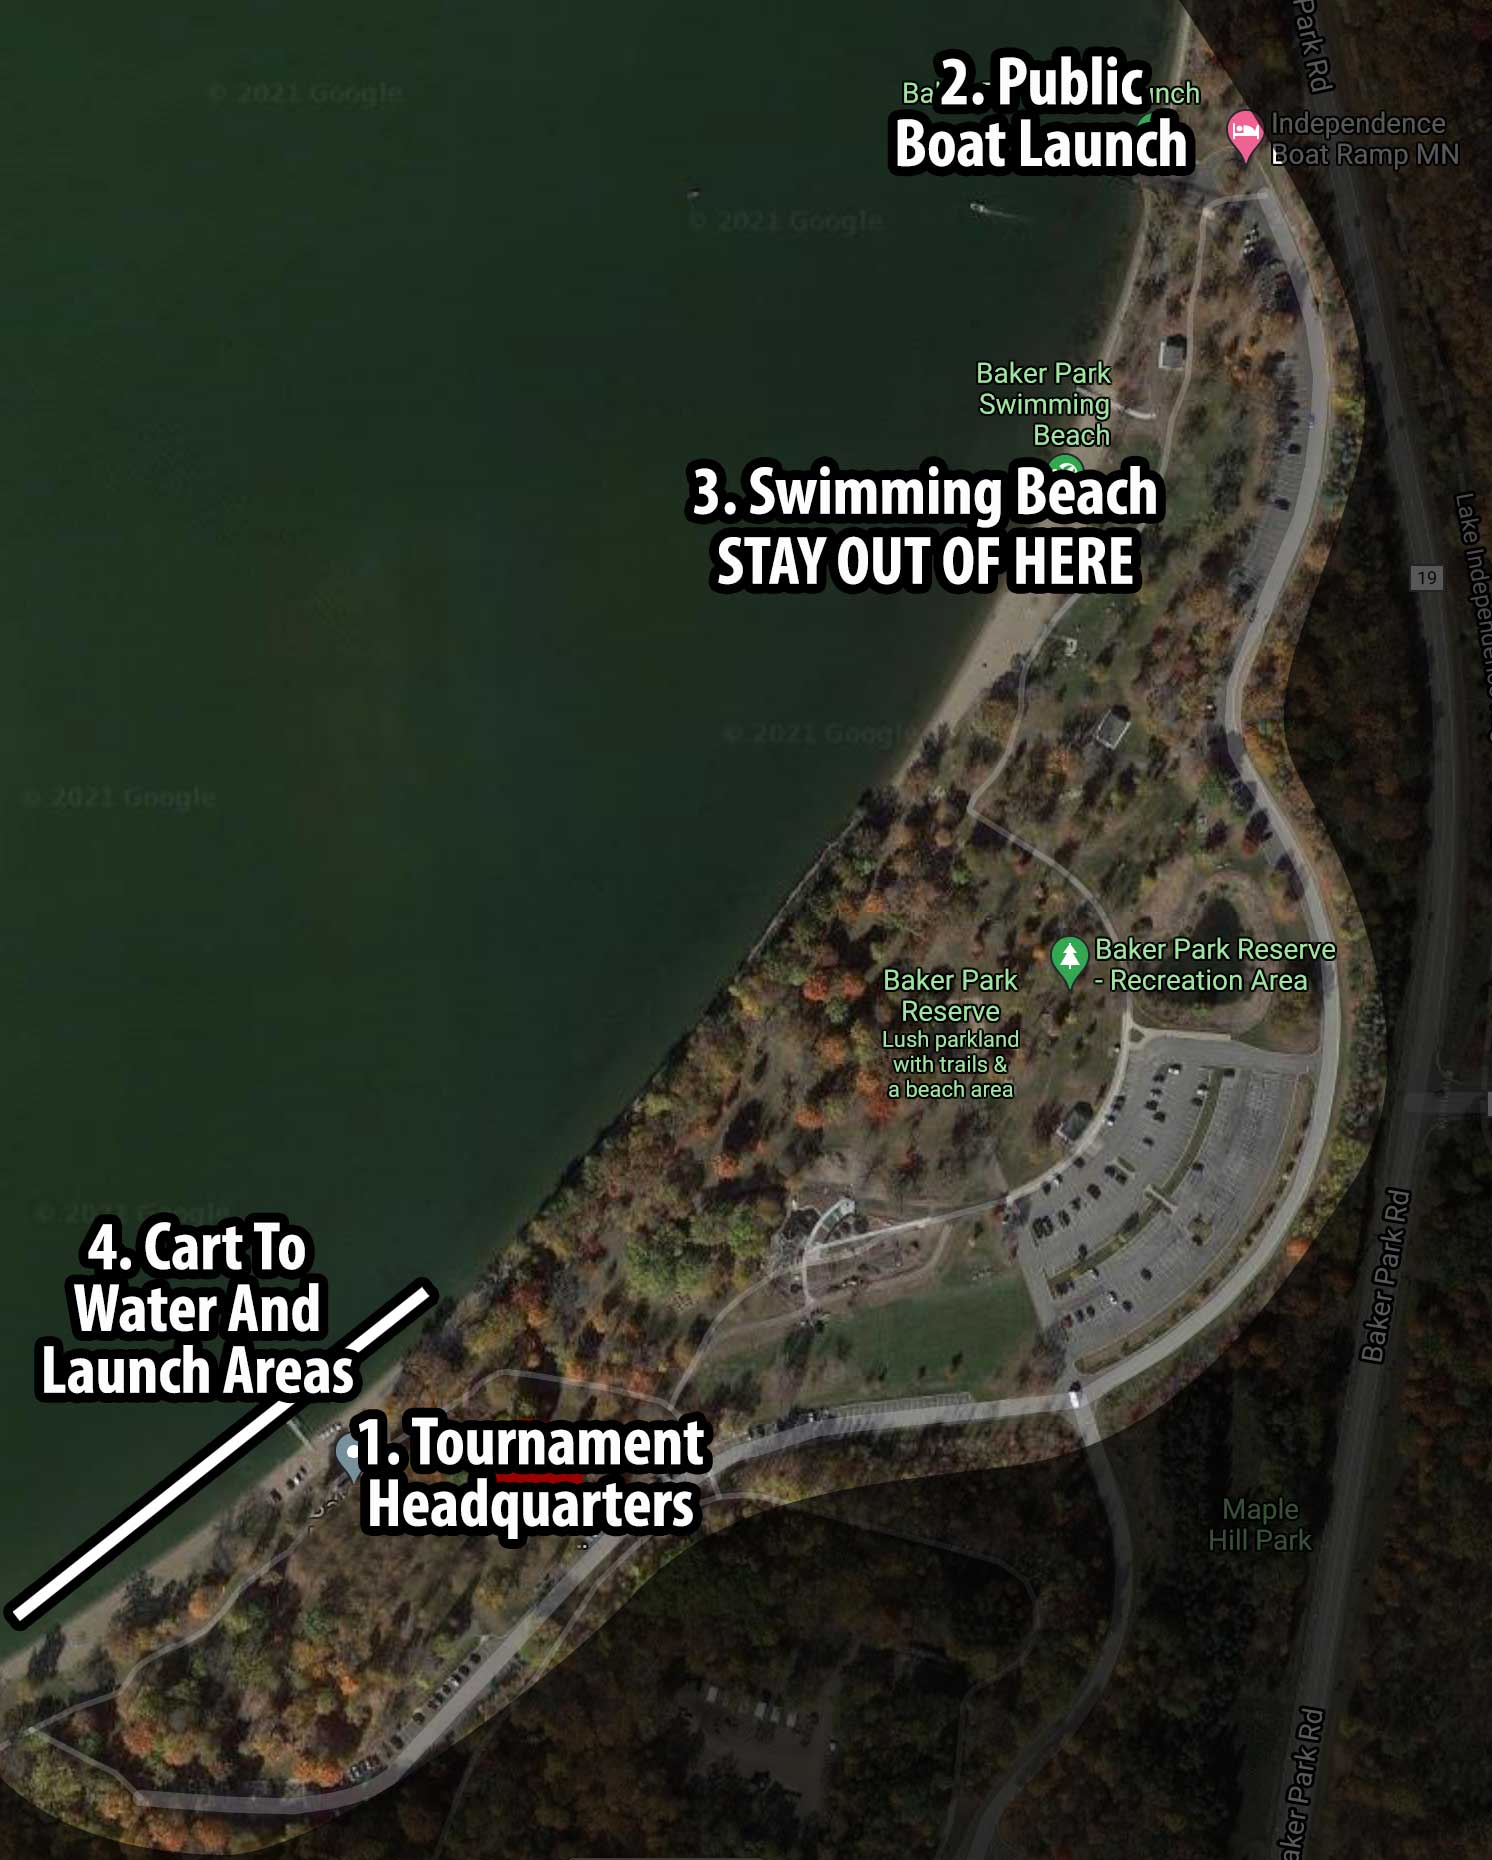 Lake Independence Launch Areas